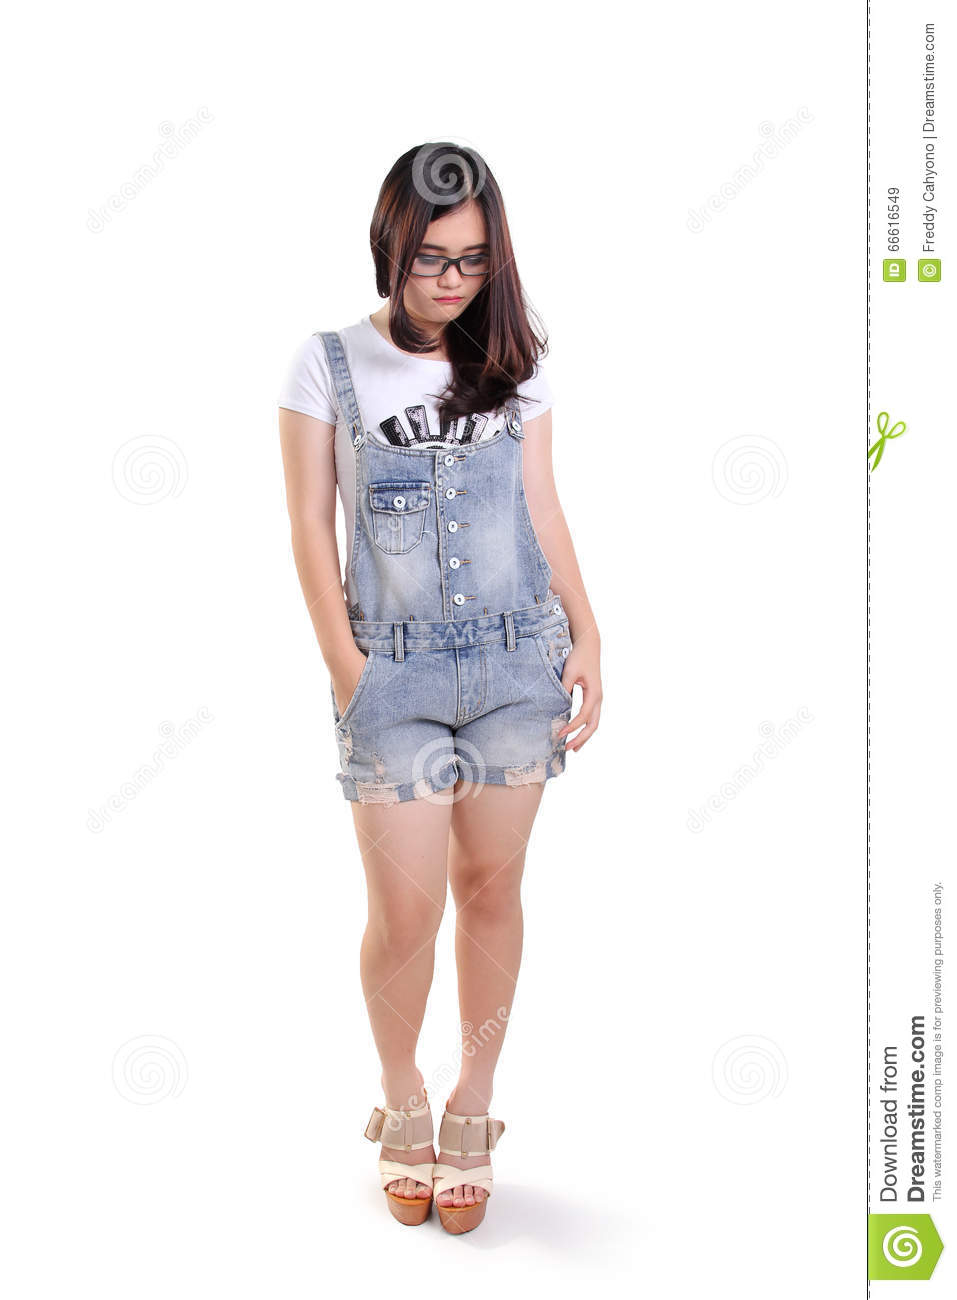 Full length portrait of cute sad nerdy girl looking down on white background